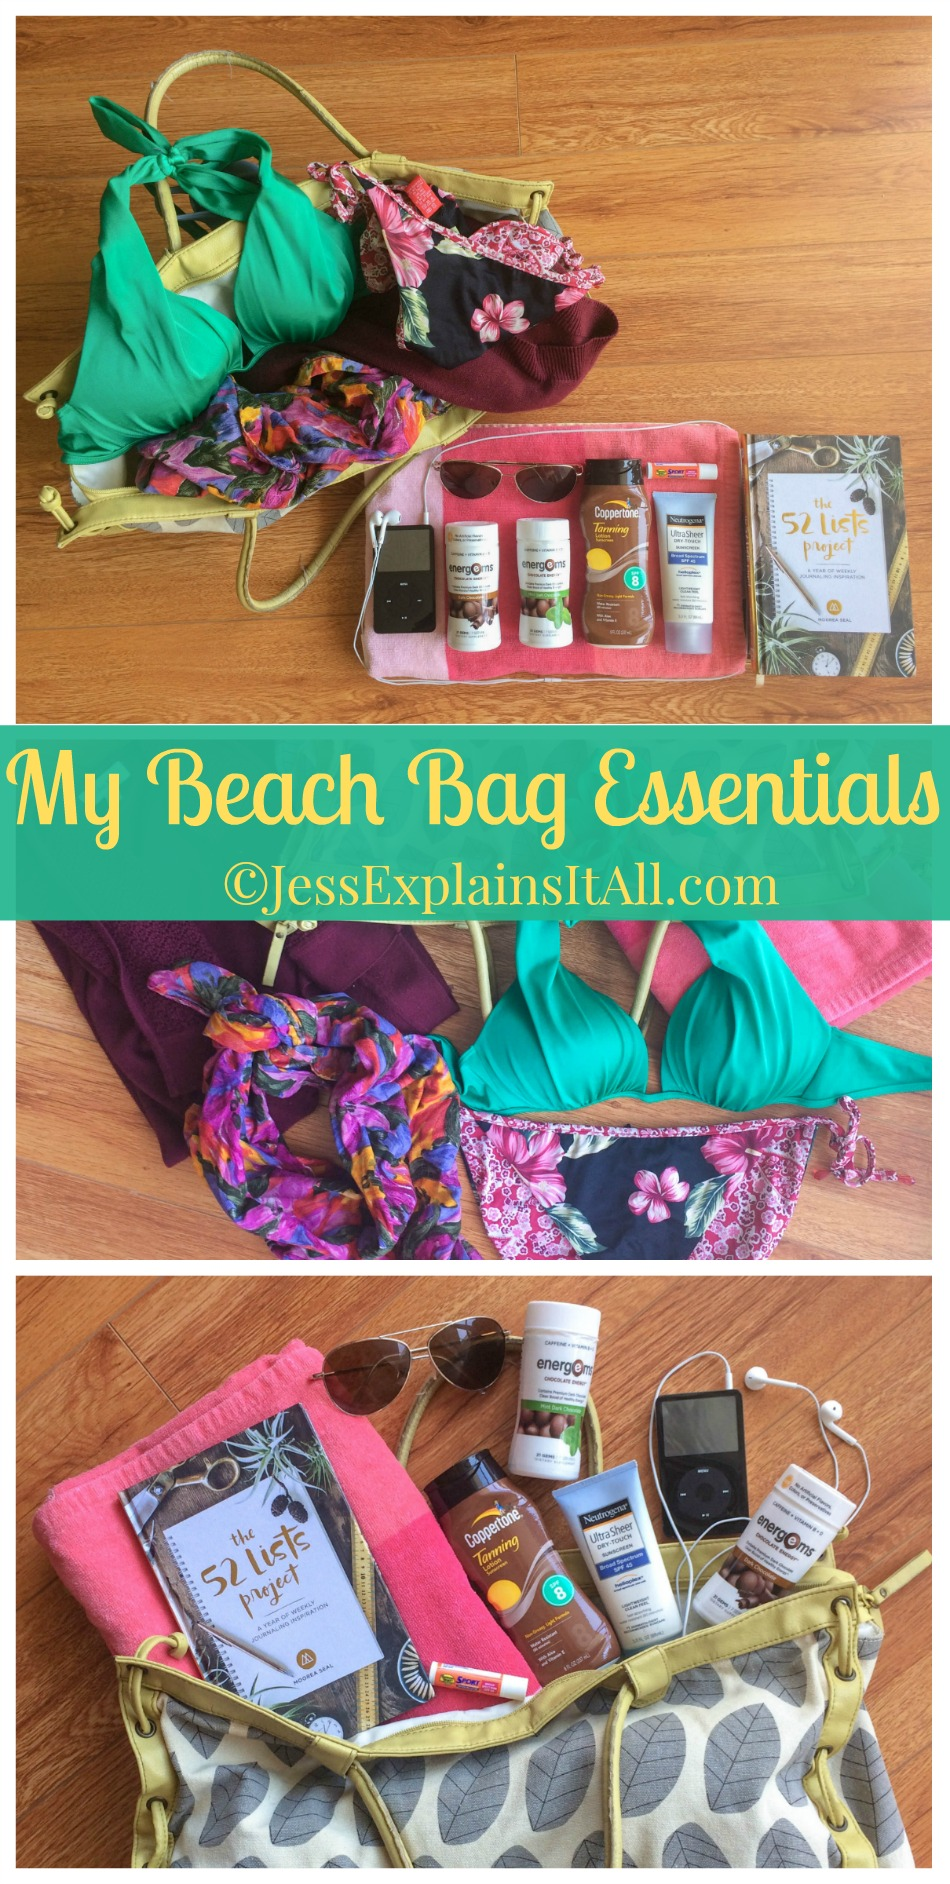 I love taking trips to the beach, but it's always best when you're prepared! Check out my beach bag essentials for a list of what I bring on my beach trips! www.JessExplainsItAll.com #TheBestMe #CollectiveBias #ad